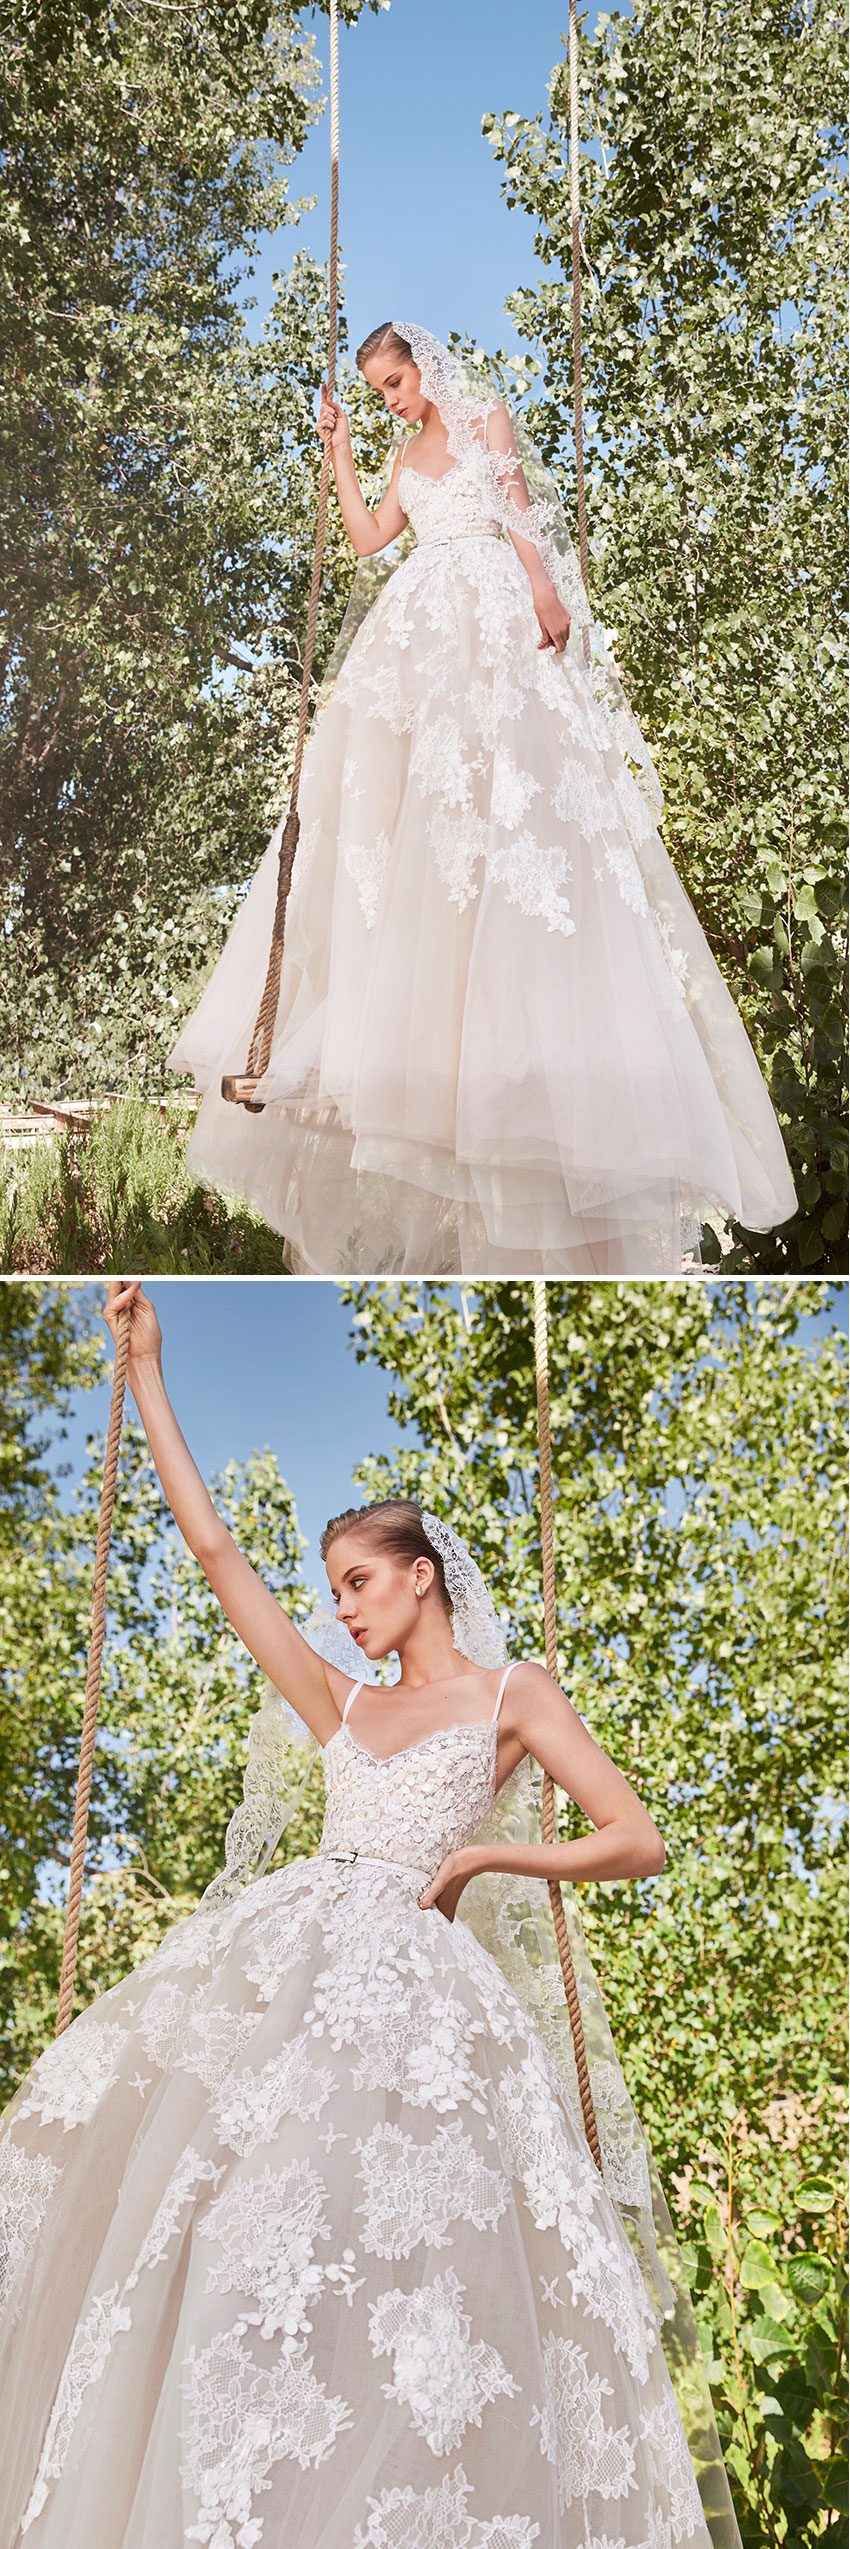 Elie Saab Spring 2021 bridal collection accentuates the bride's own beauty as seen in Perfect Wedding Magazine